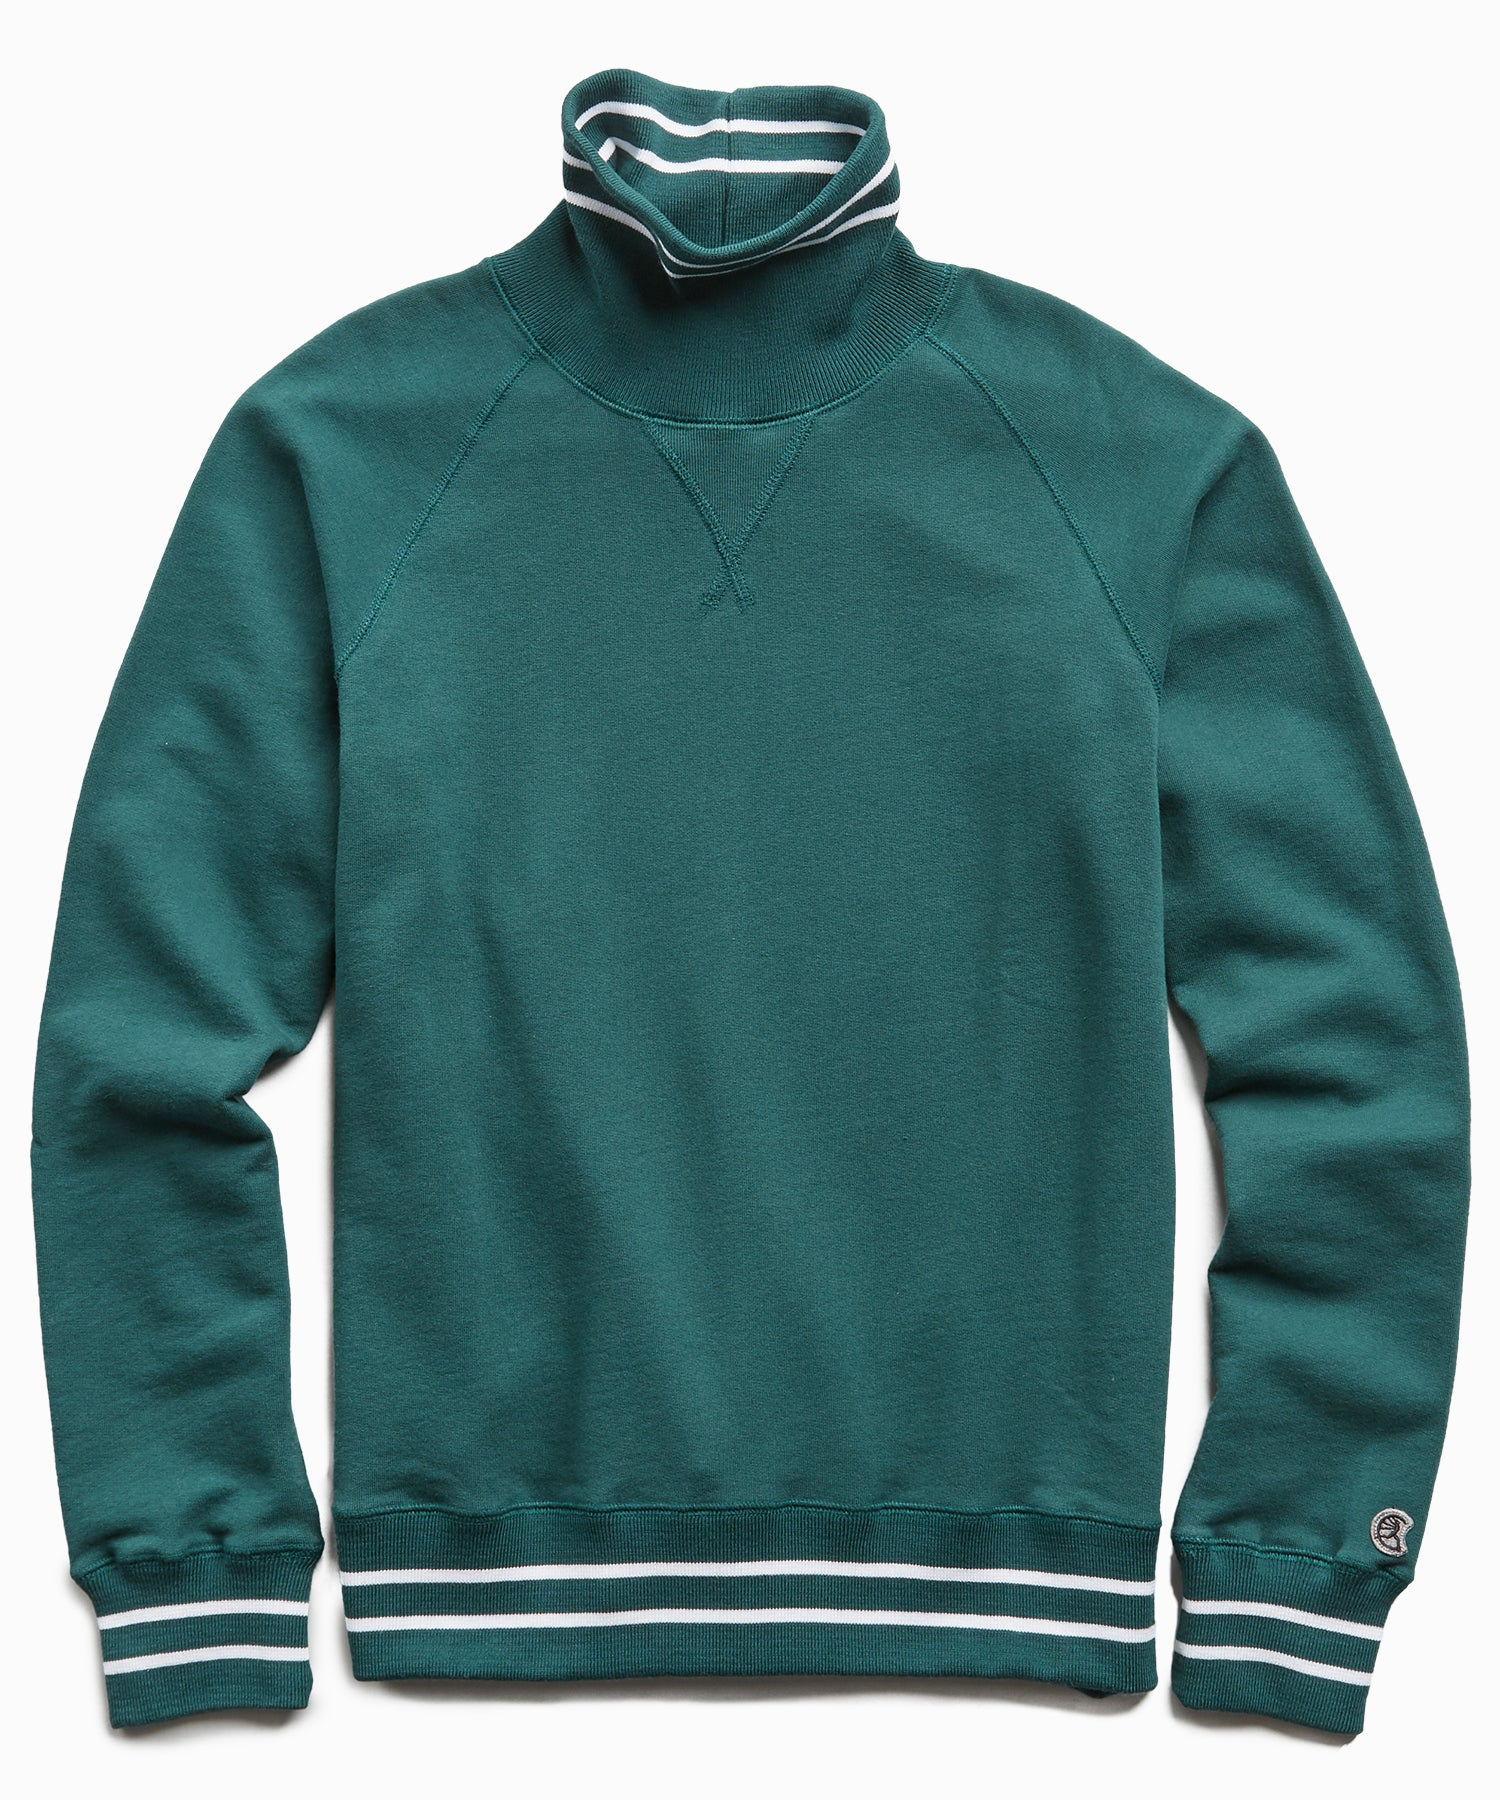 Tipped Turtleneck Sweatshirt in Storm Green